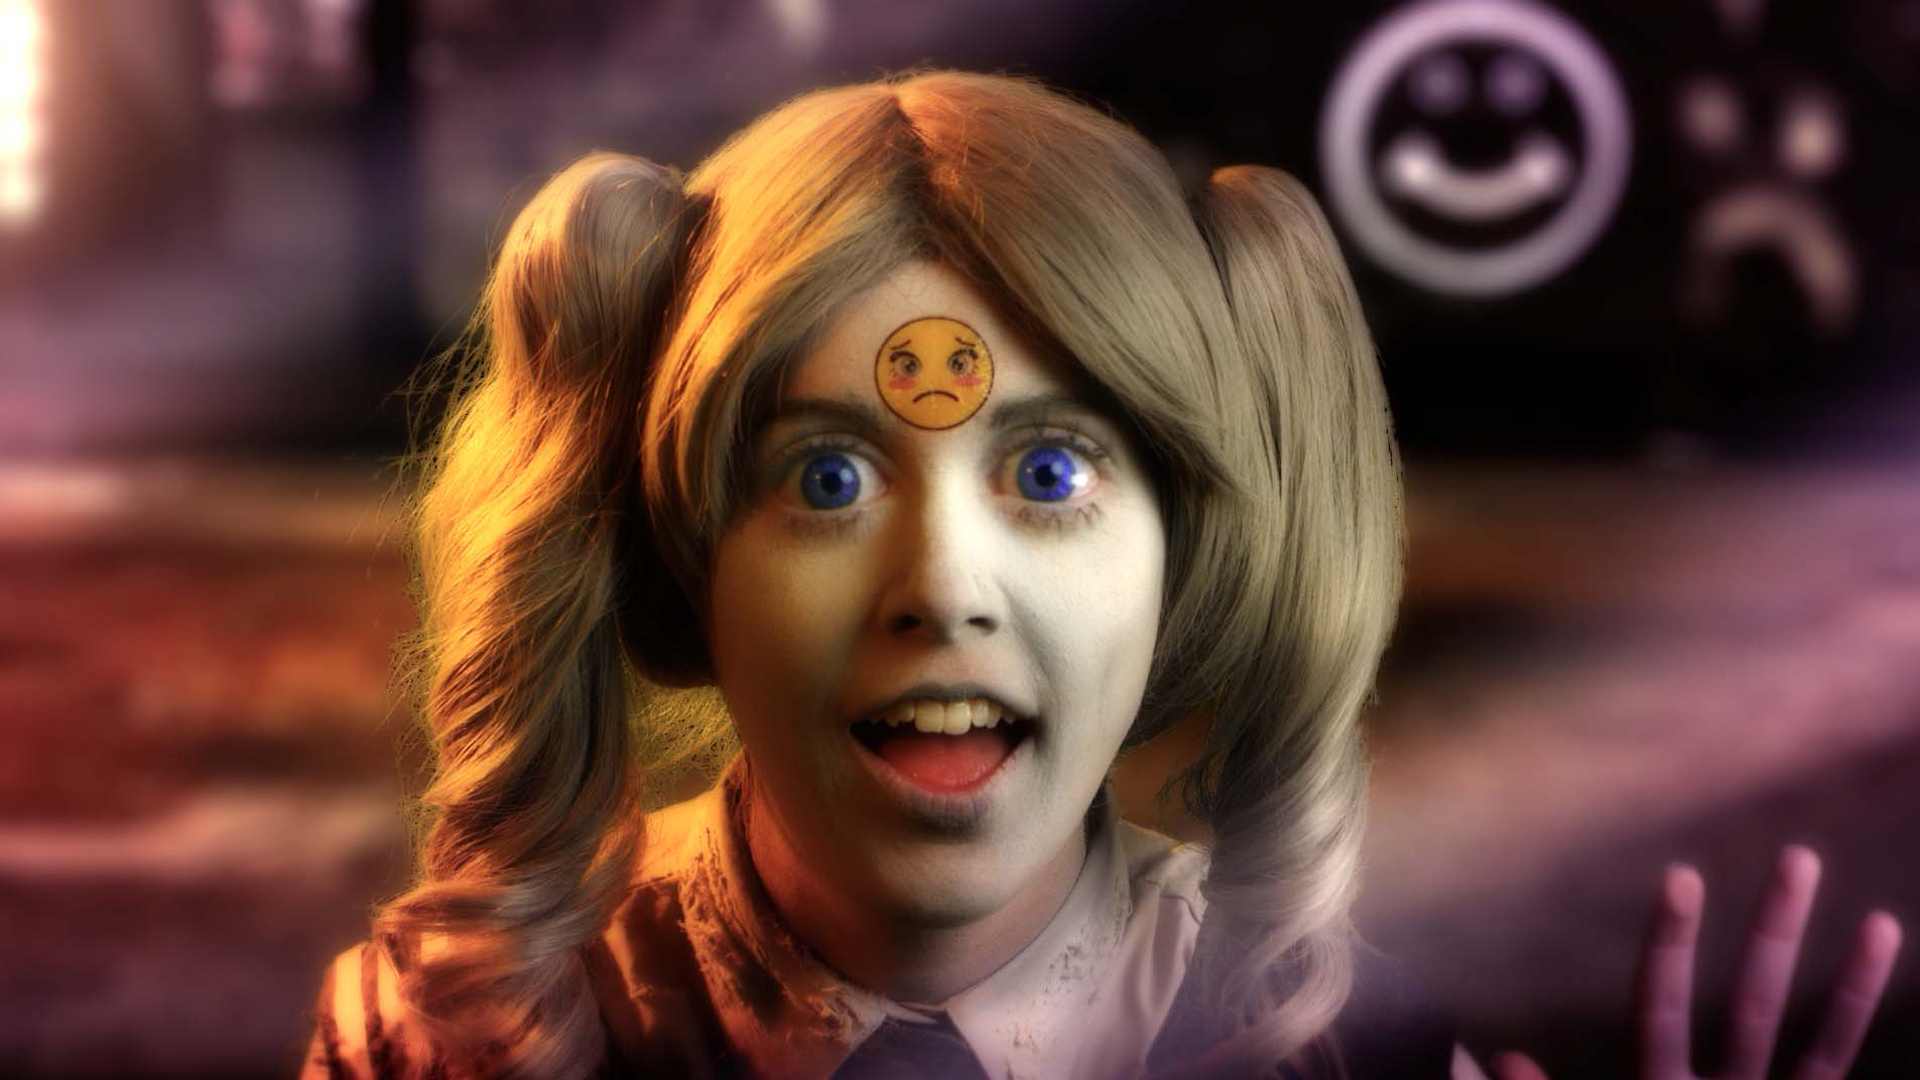 Young girl with big eyes in film Feed Me